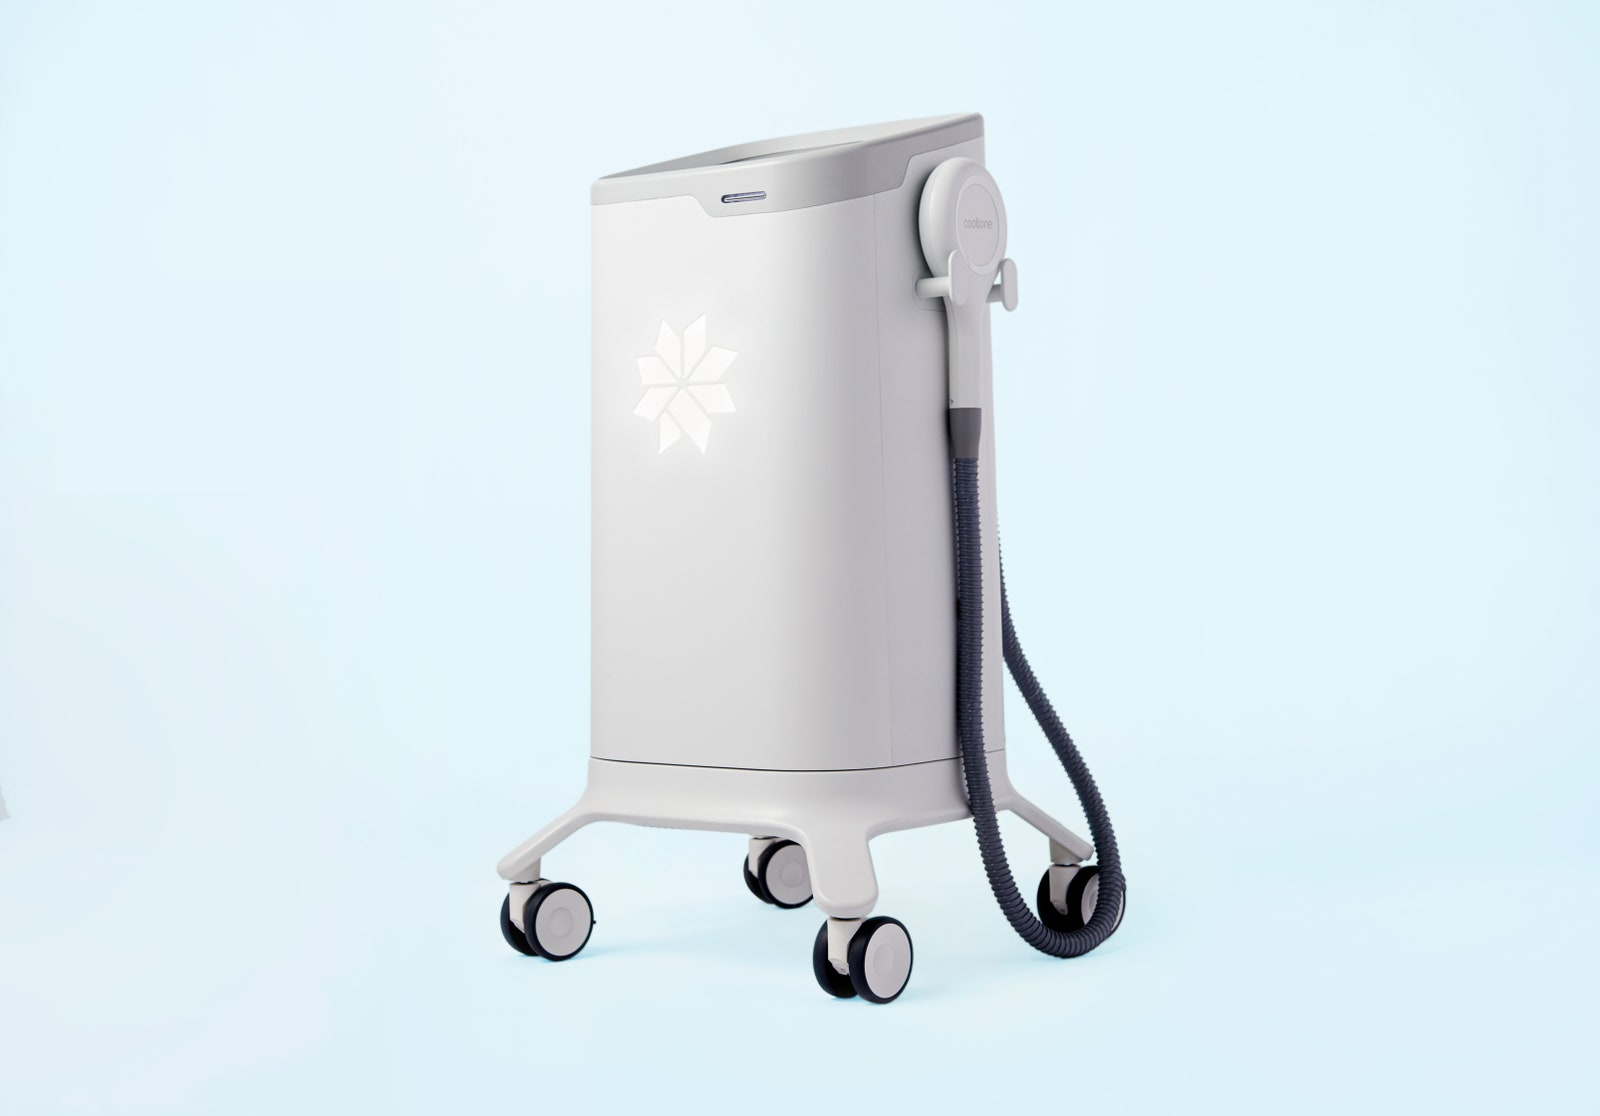 image showing CoolTone, a new technology that enhances your body contours, New York City, NY